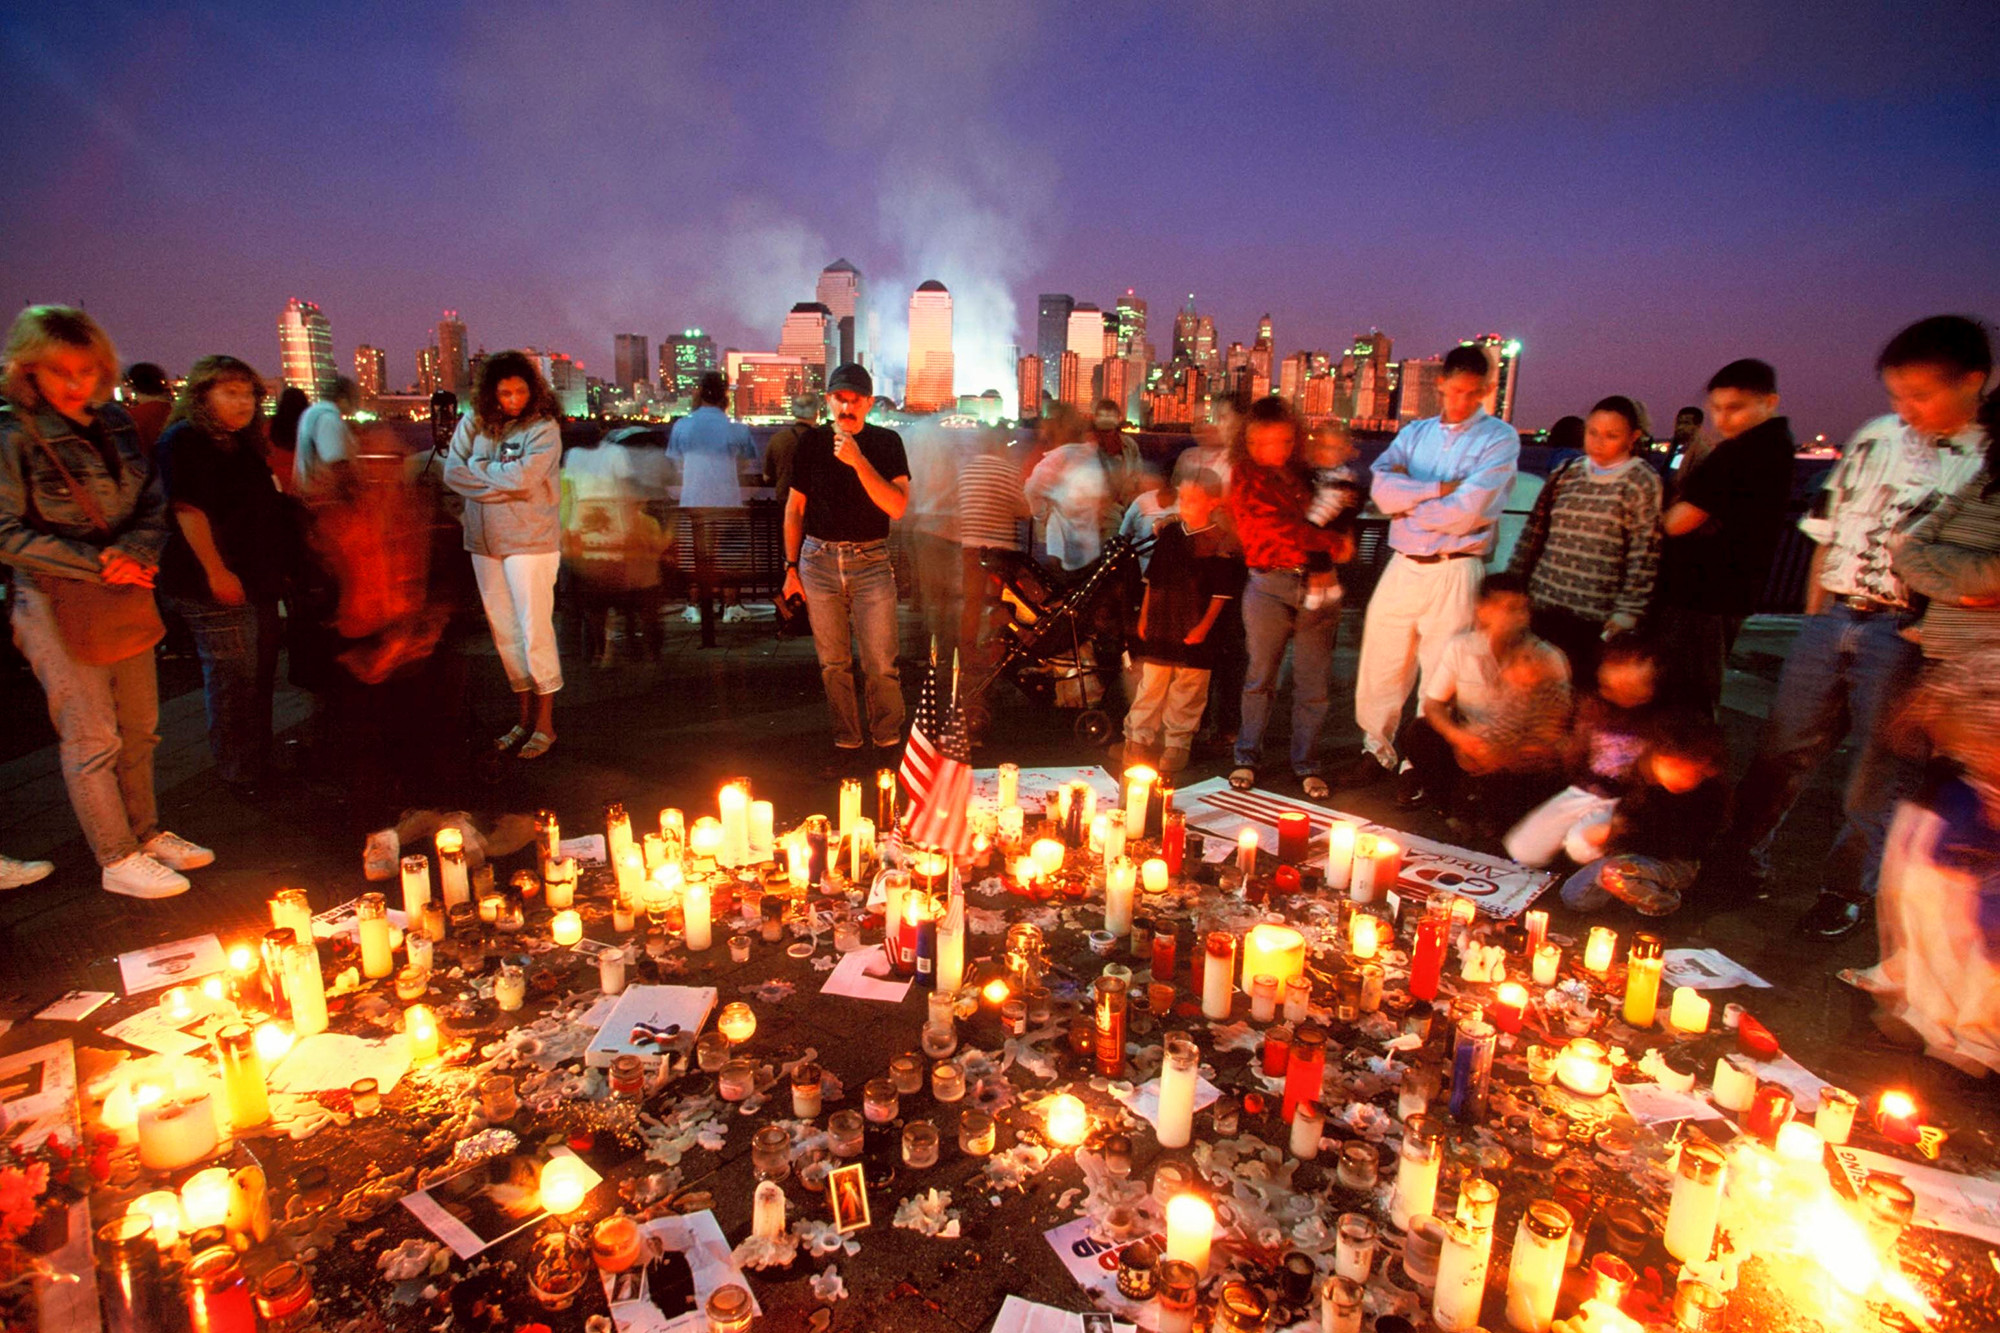 Following the 9/11 attacks, people prioritized each other's well-being over politics.